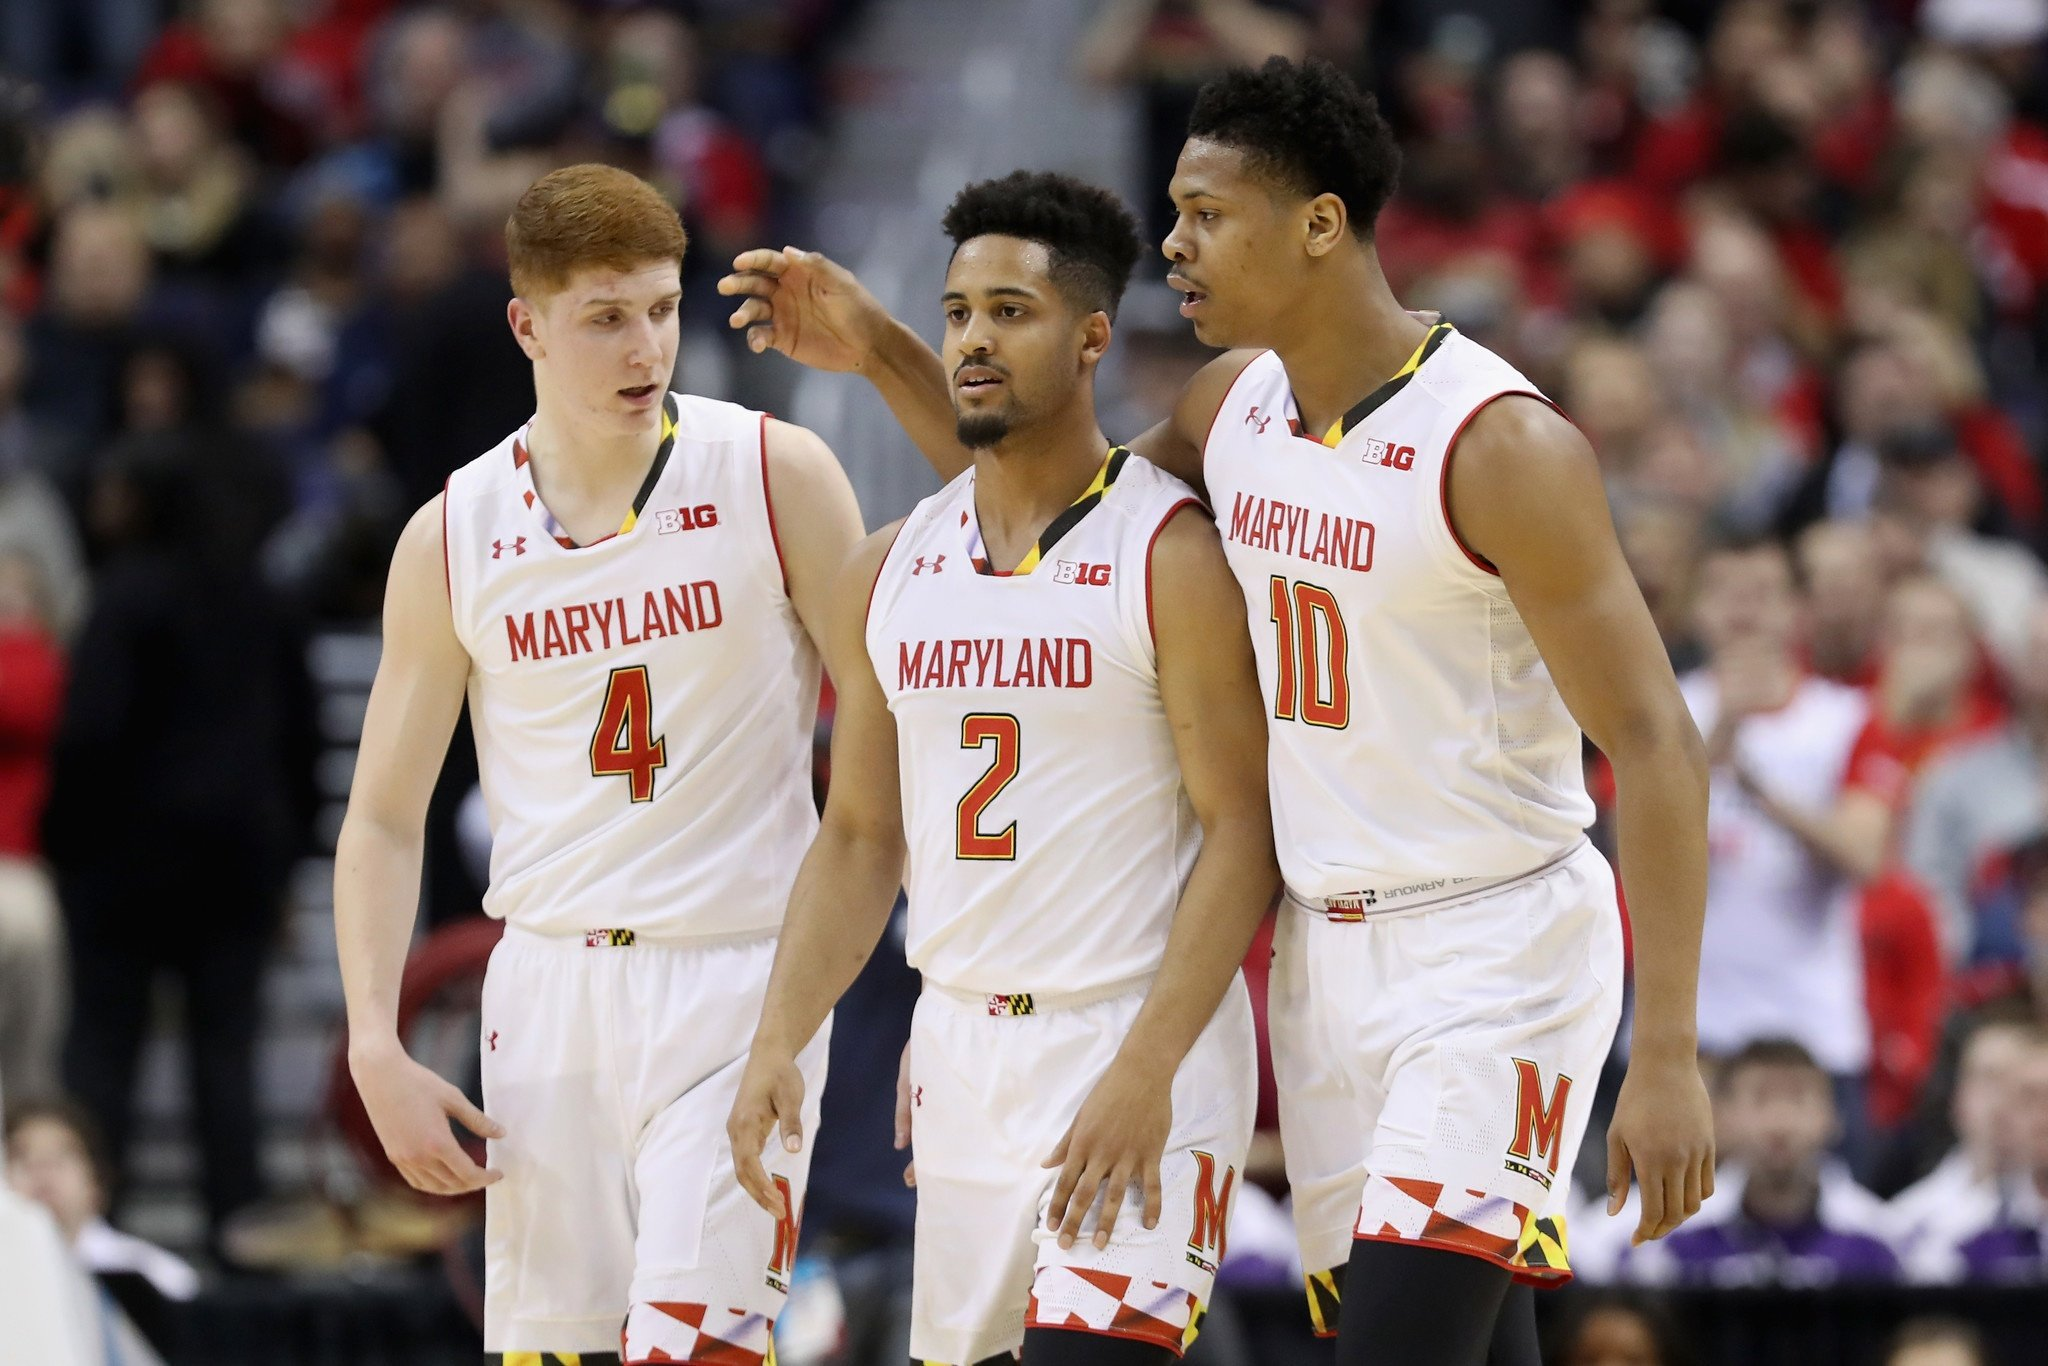 bal-maryland-basketball-a-surprising-no-6-seed-in-ncaa-tournament-20170312.jpg